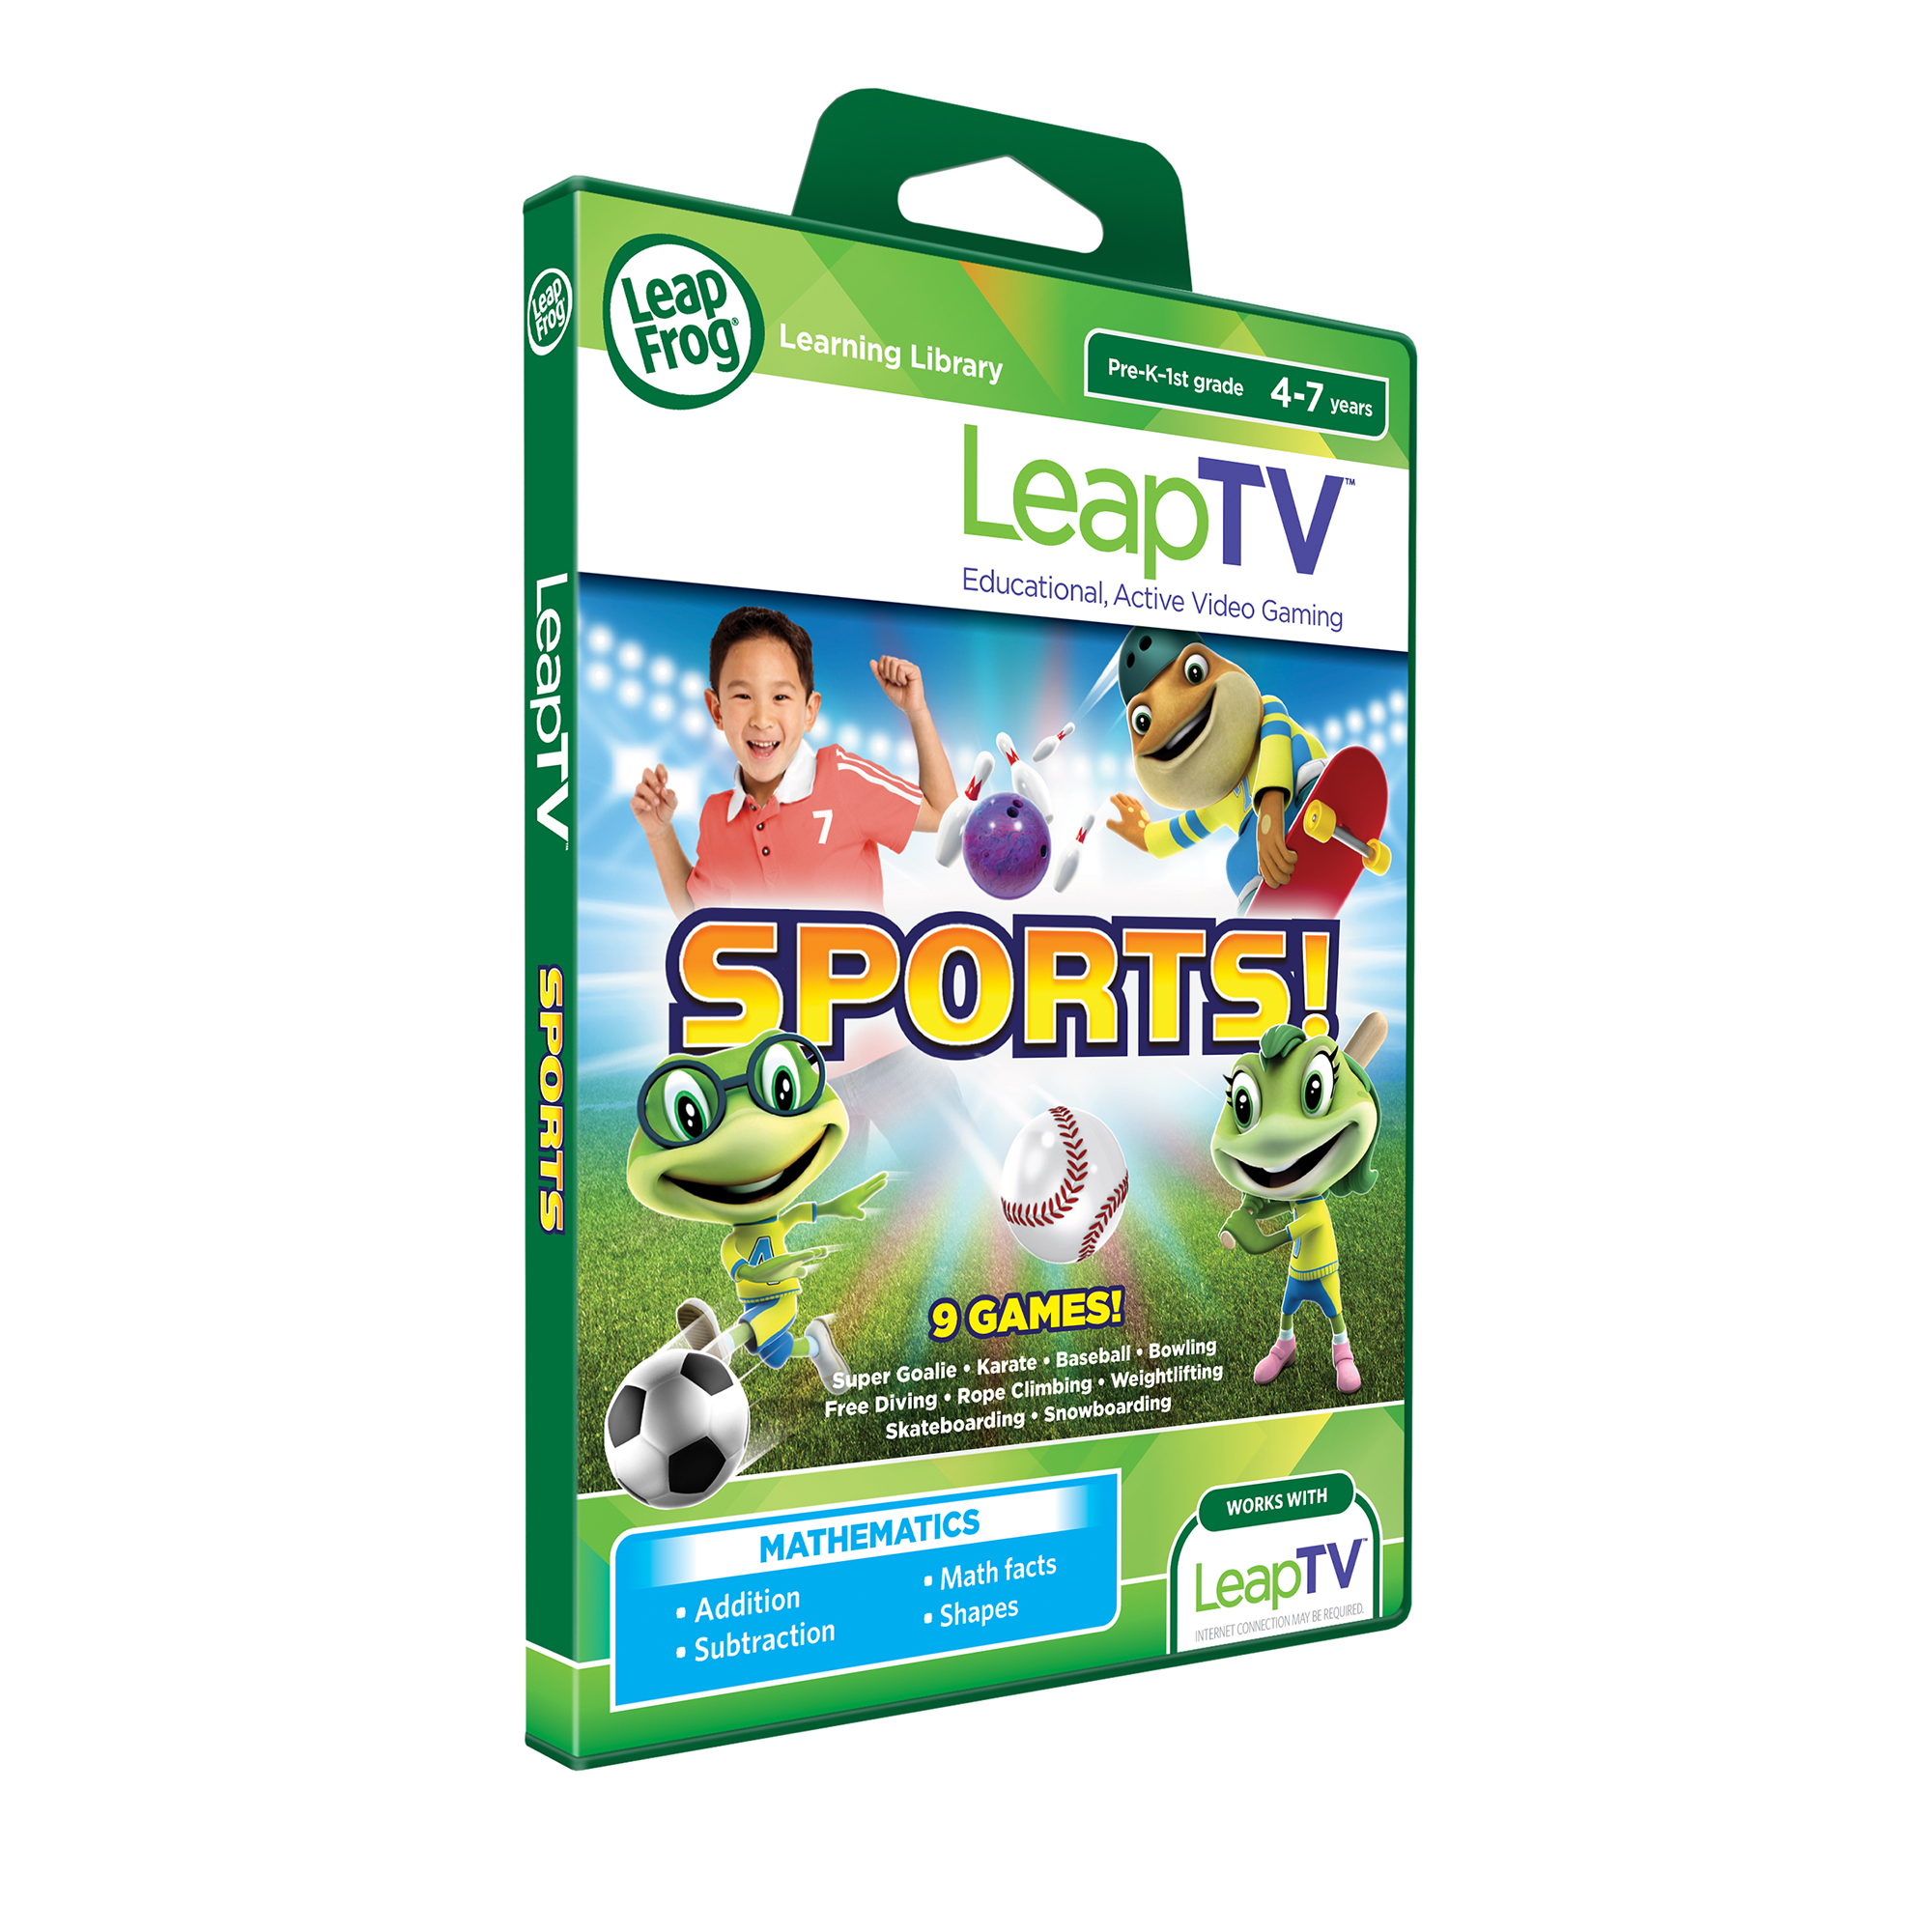 LeapFrog Sports LeapTV Software